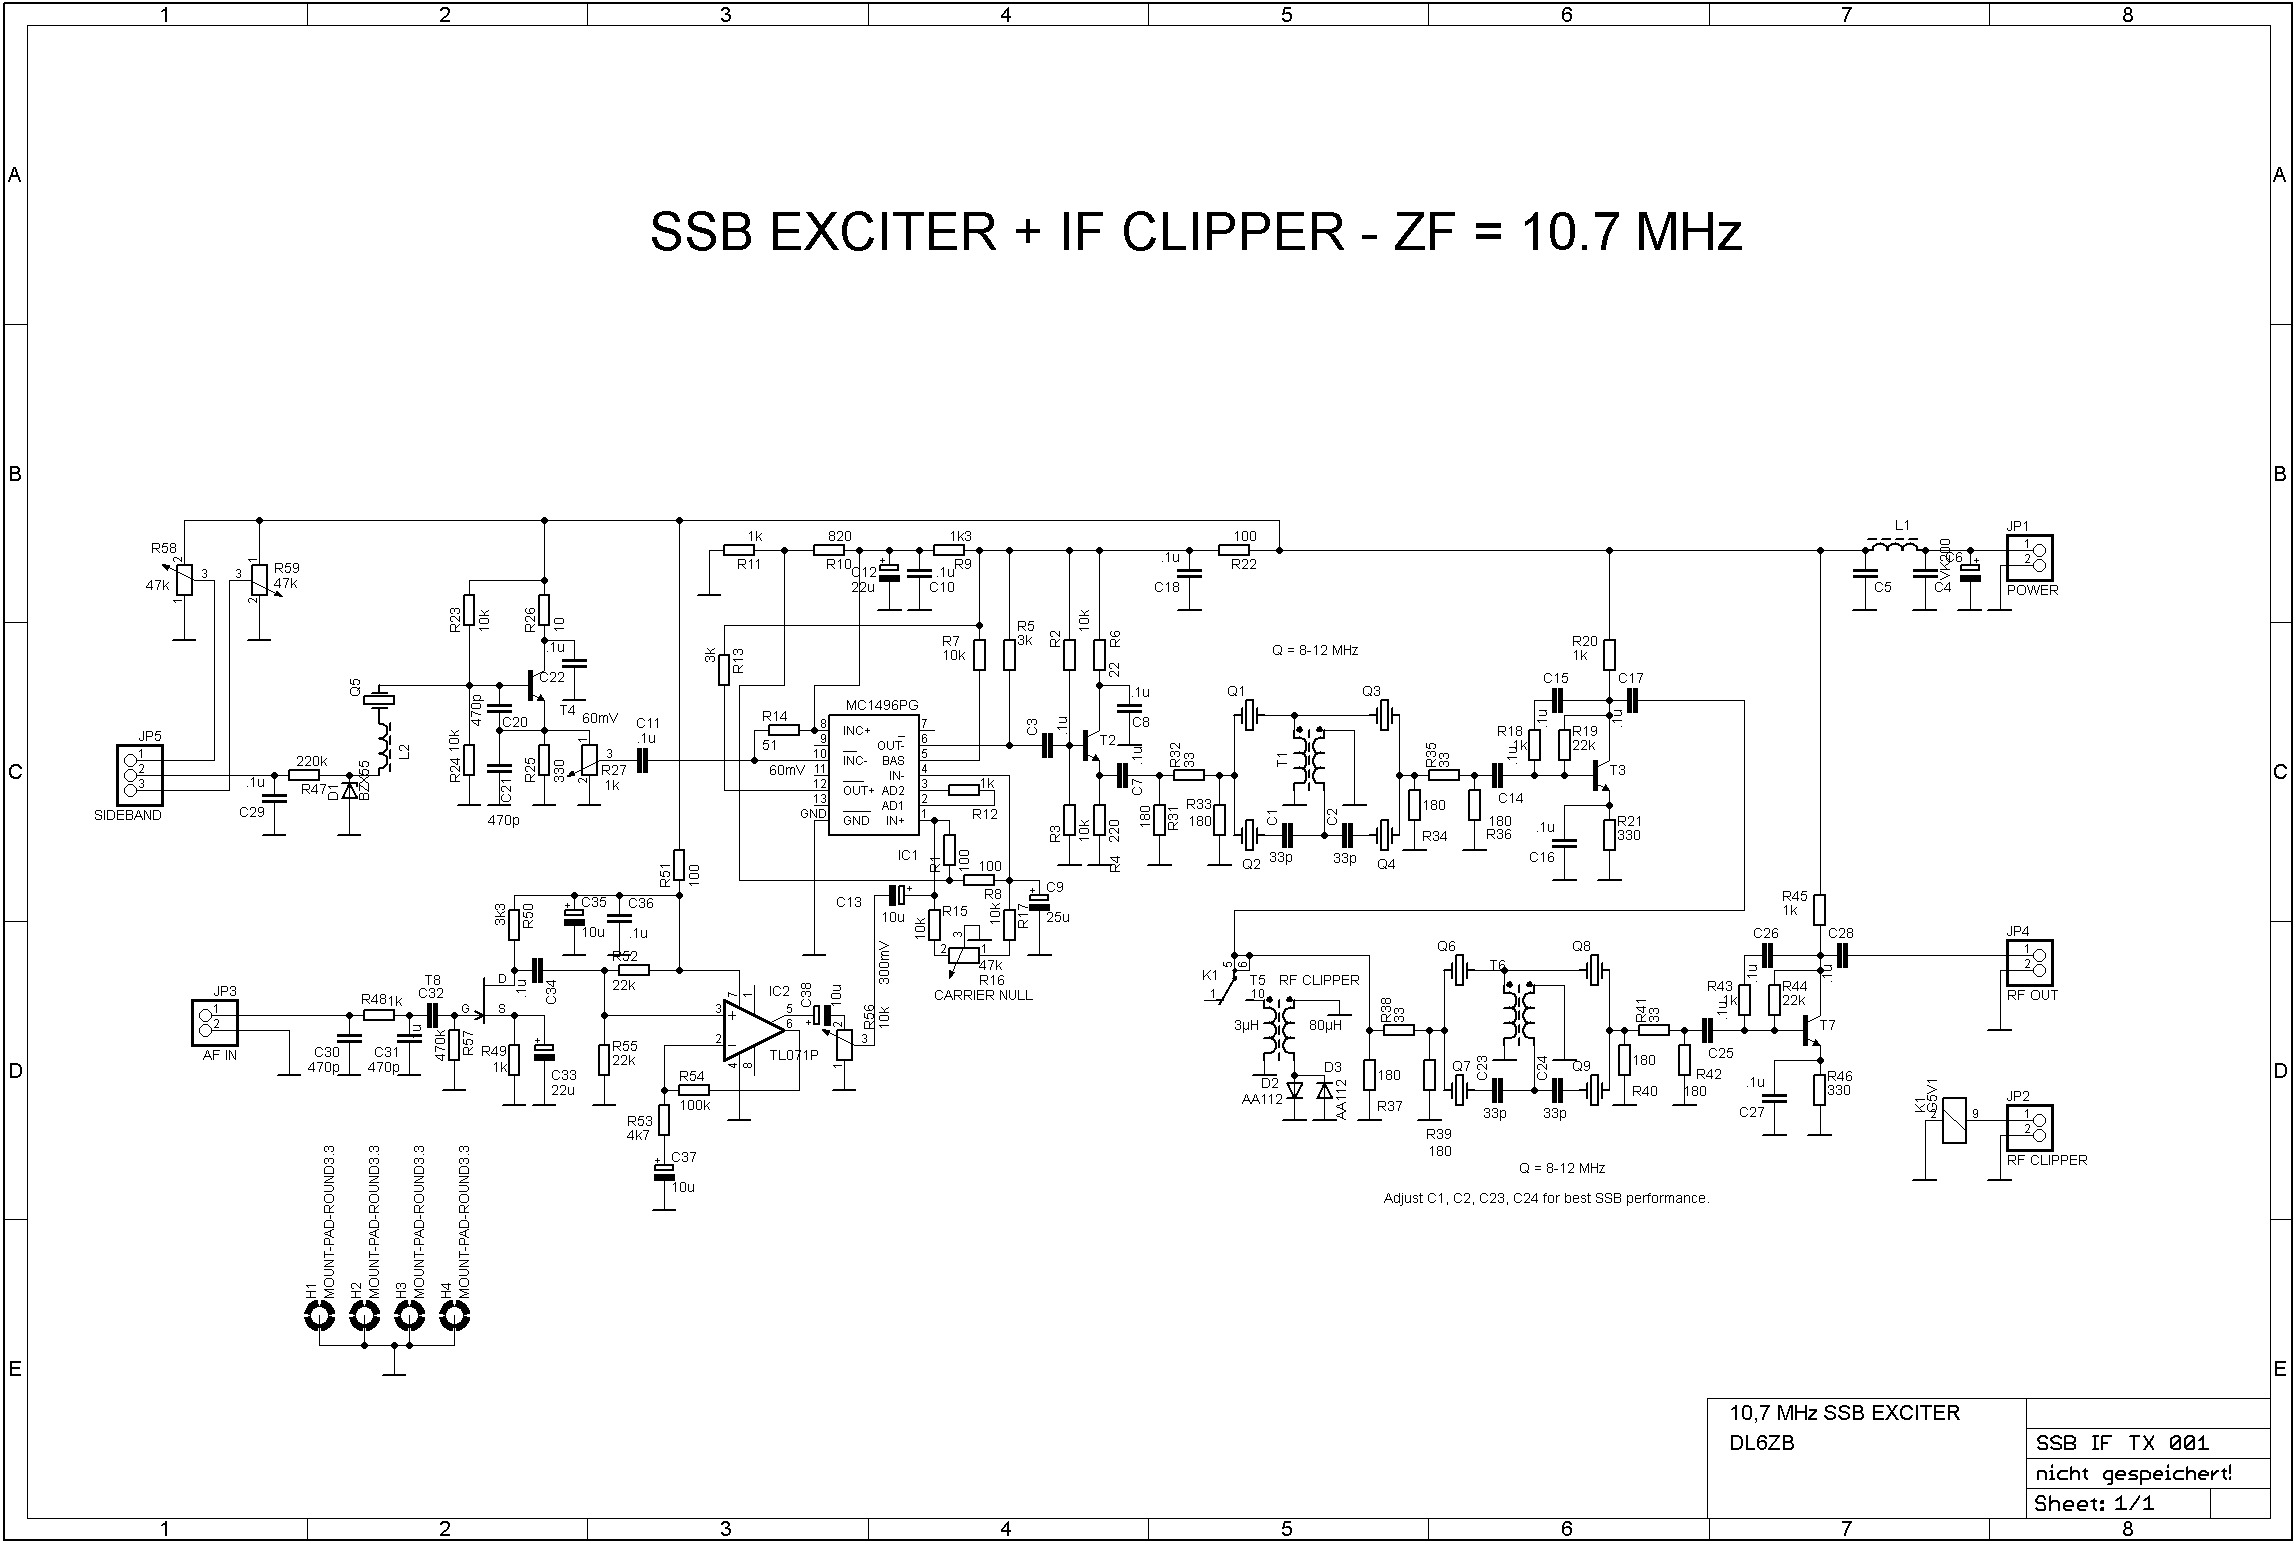 Crystal Filter Schematic Trusted Wiring Diagram C36 Ssb Exciter With If Clipper Receiver Stylized Symbol Circuit 10 7 Mhz